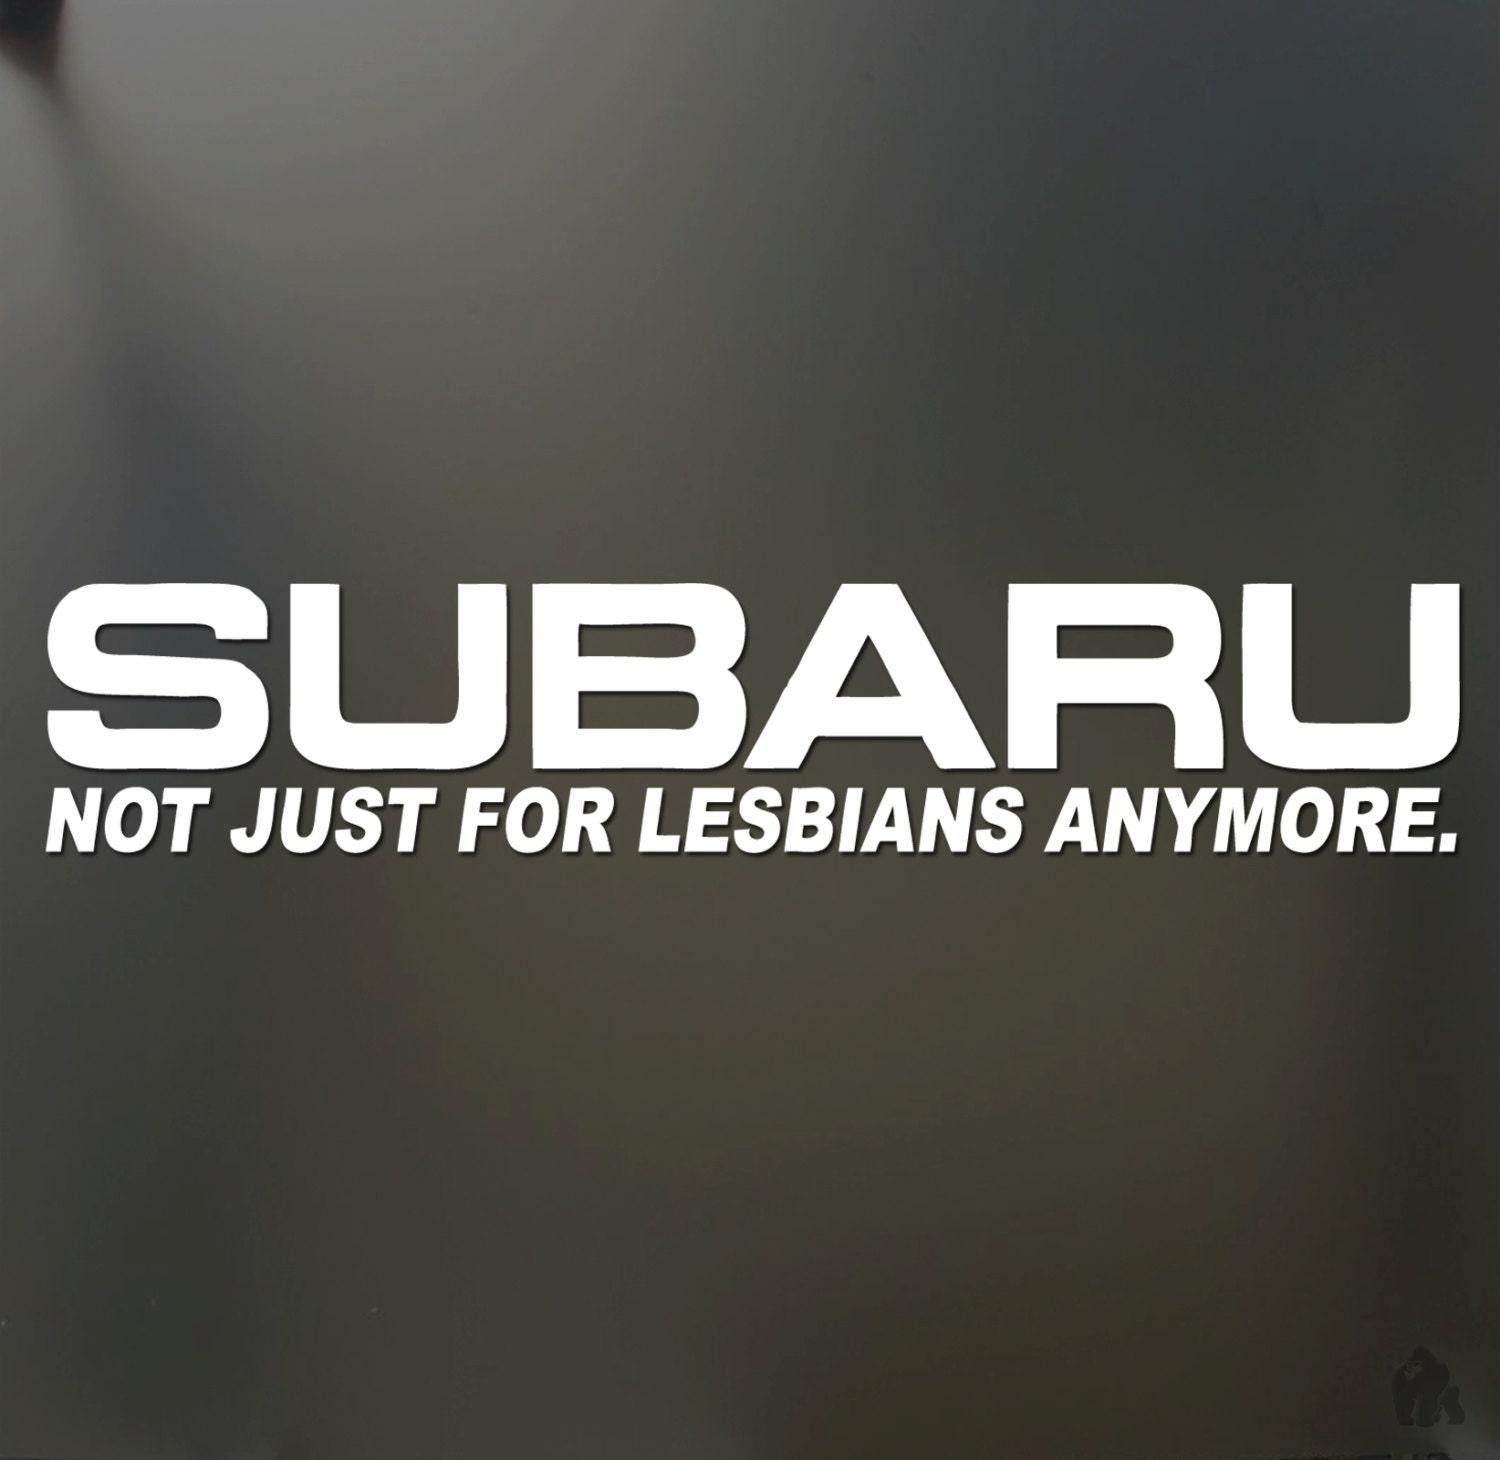 Subaru not just for lesbians anymore sticker Funny JDM race car window gay  decal